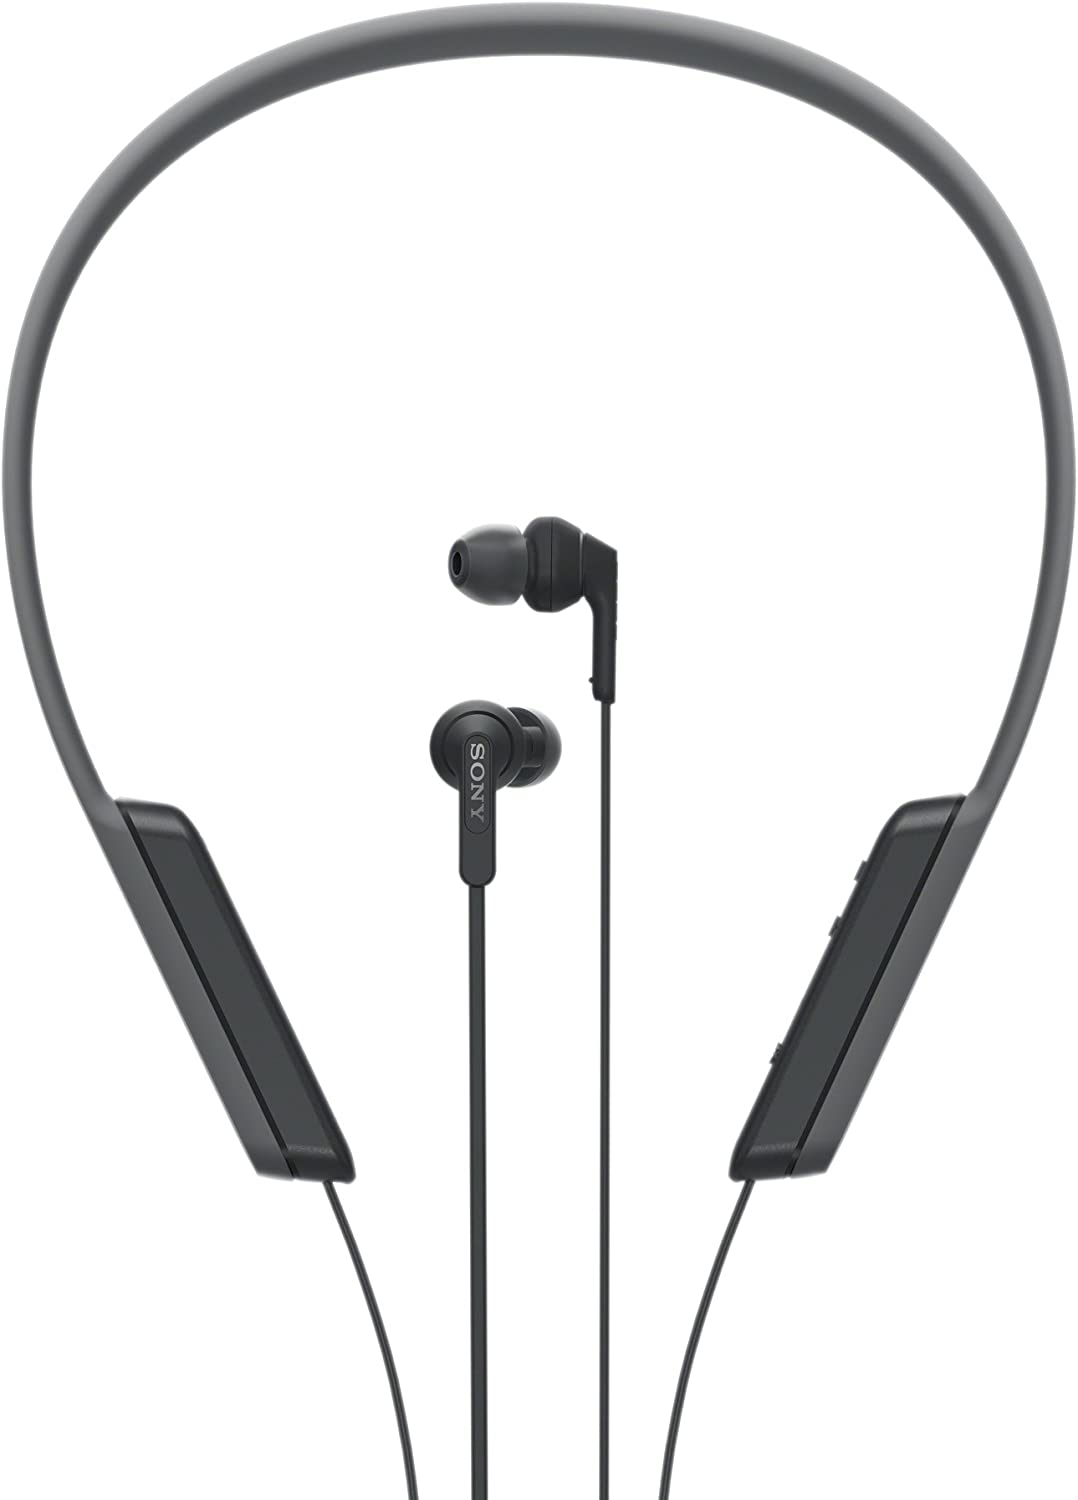 Sony MDR-XB70BT - Auriculares Bluetooth de contorno de cuello (EXTRA BASS, NFC, manos libres para Apple iPhone y Android, autonomía de 9 h), color negro